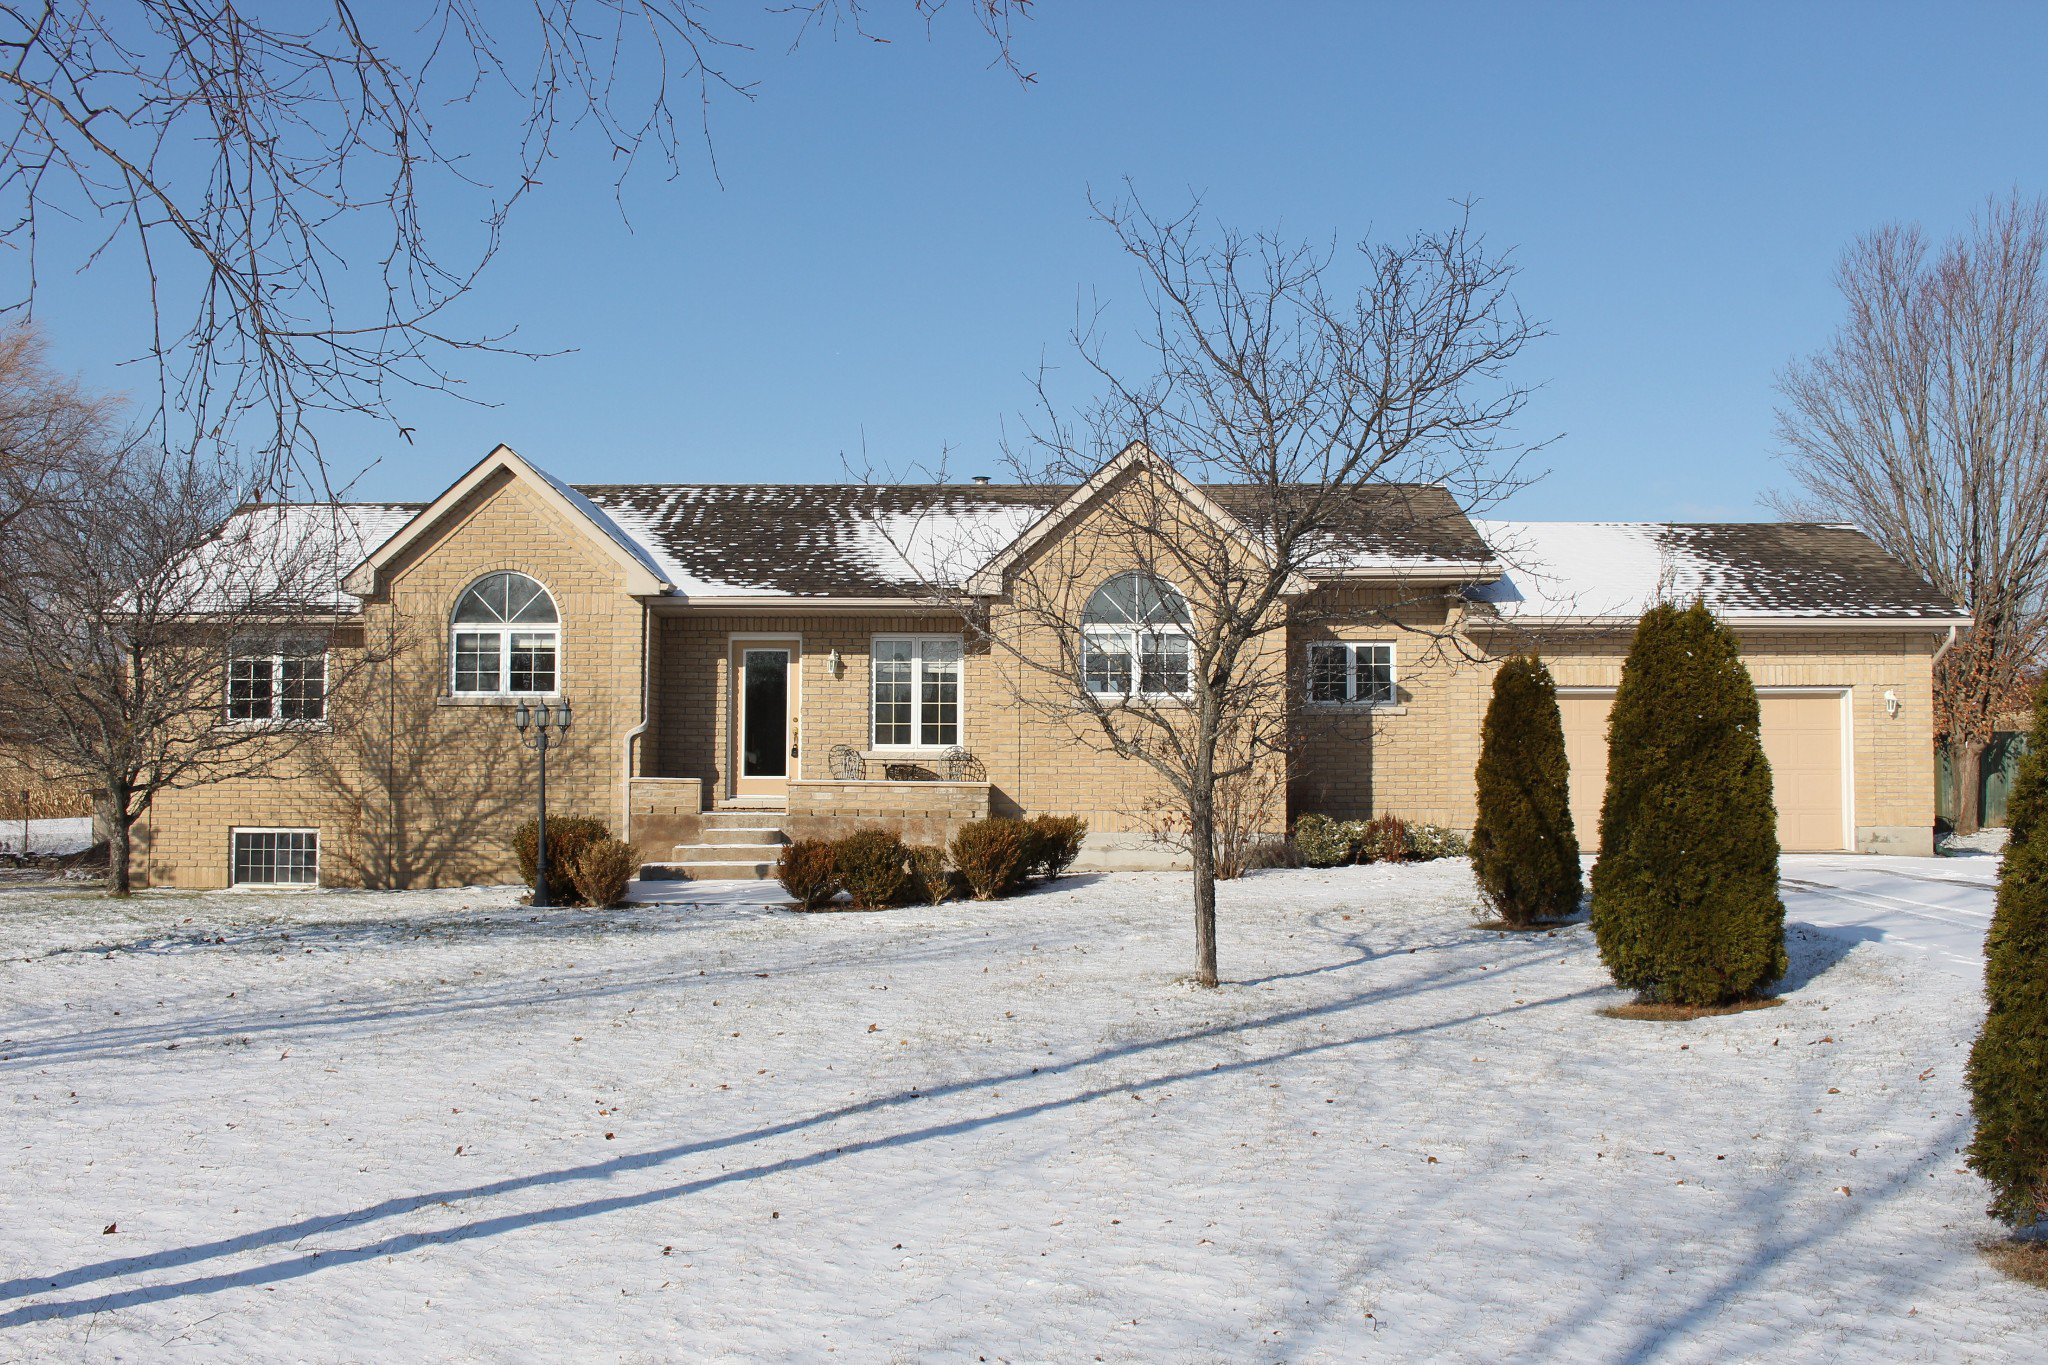 Main Photo: 8524 Dale Rd in Hamilton Twp: Residential Detached for sale : MLS®# 236443